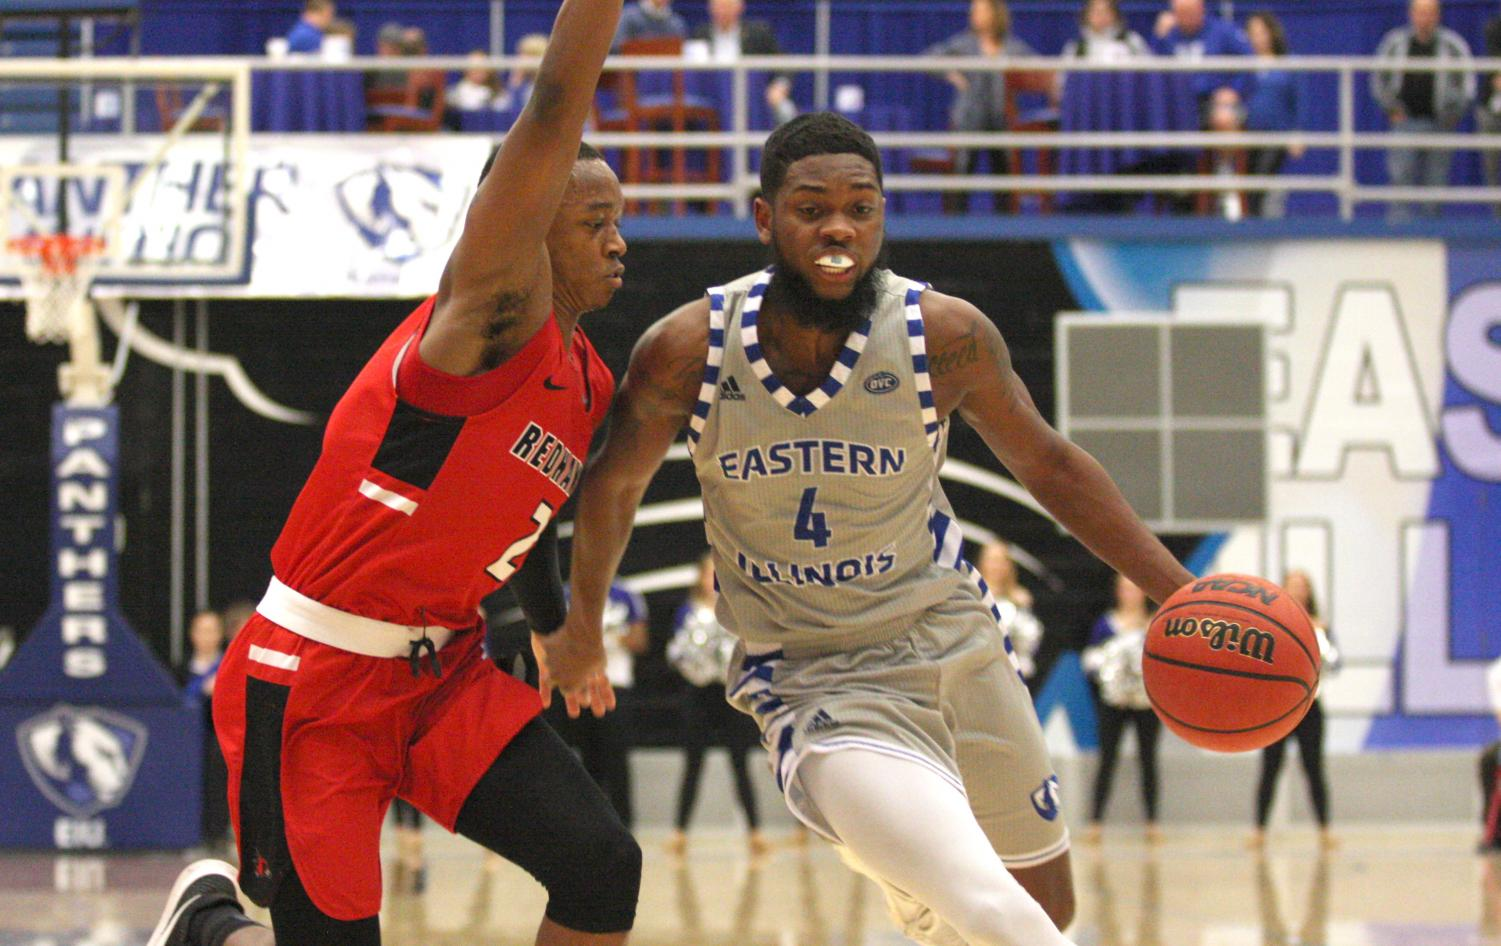 Eastern senior Montell Goodwin dribbles around a Southeast Missouri defender in the Panthers 86-74 loss to the Redhawks Saturday at Lantz Arena. Goodwin scored 13 points in the loss.